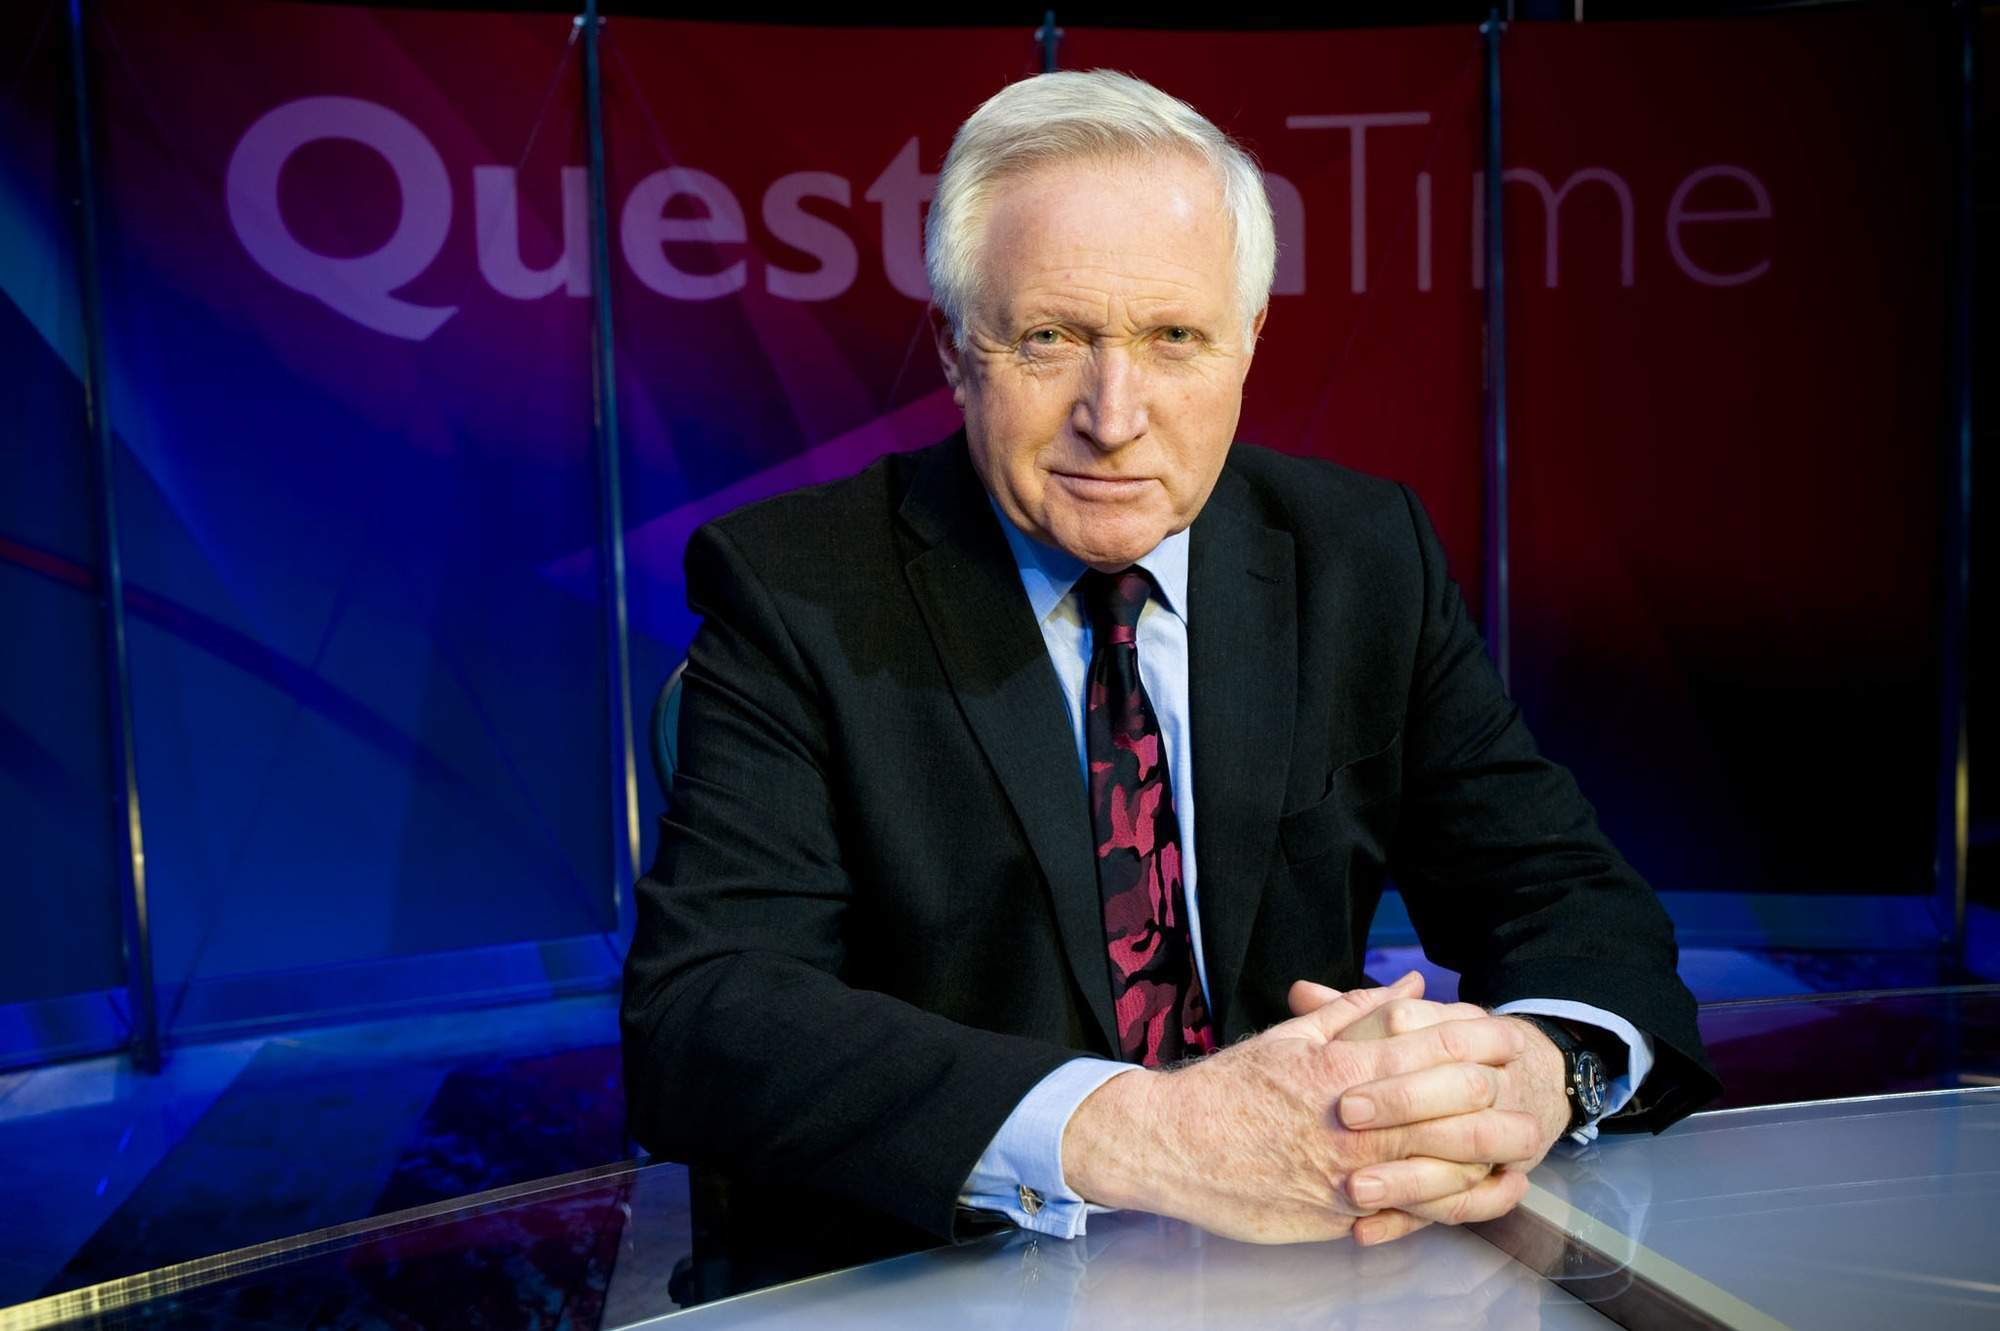 Is there left or right-wing bias on BBC Question Time?